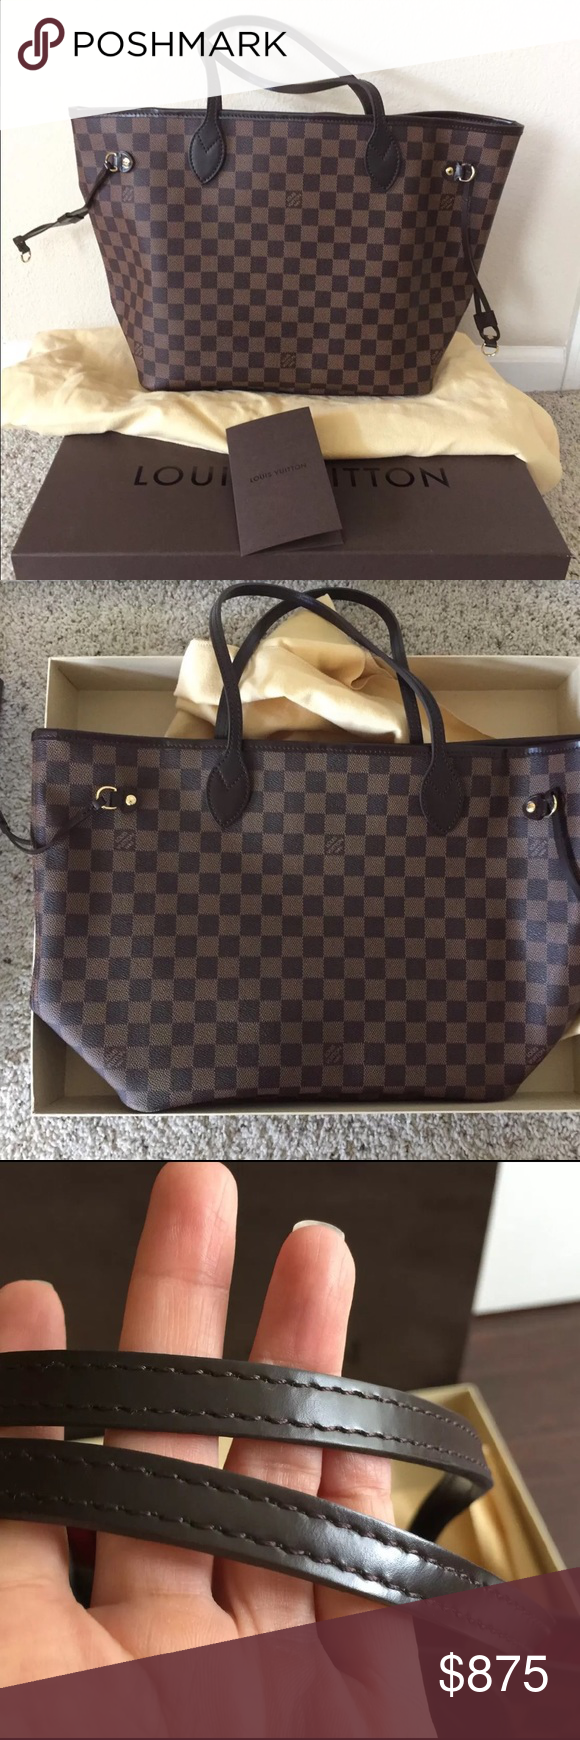 3a621425de86 2012 Louis Vuitton neverfull damier mm   Selling my 100% authentic LV  Neverfull 2012